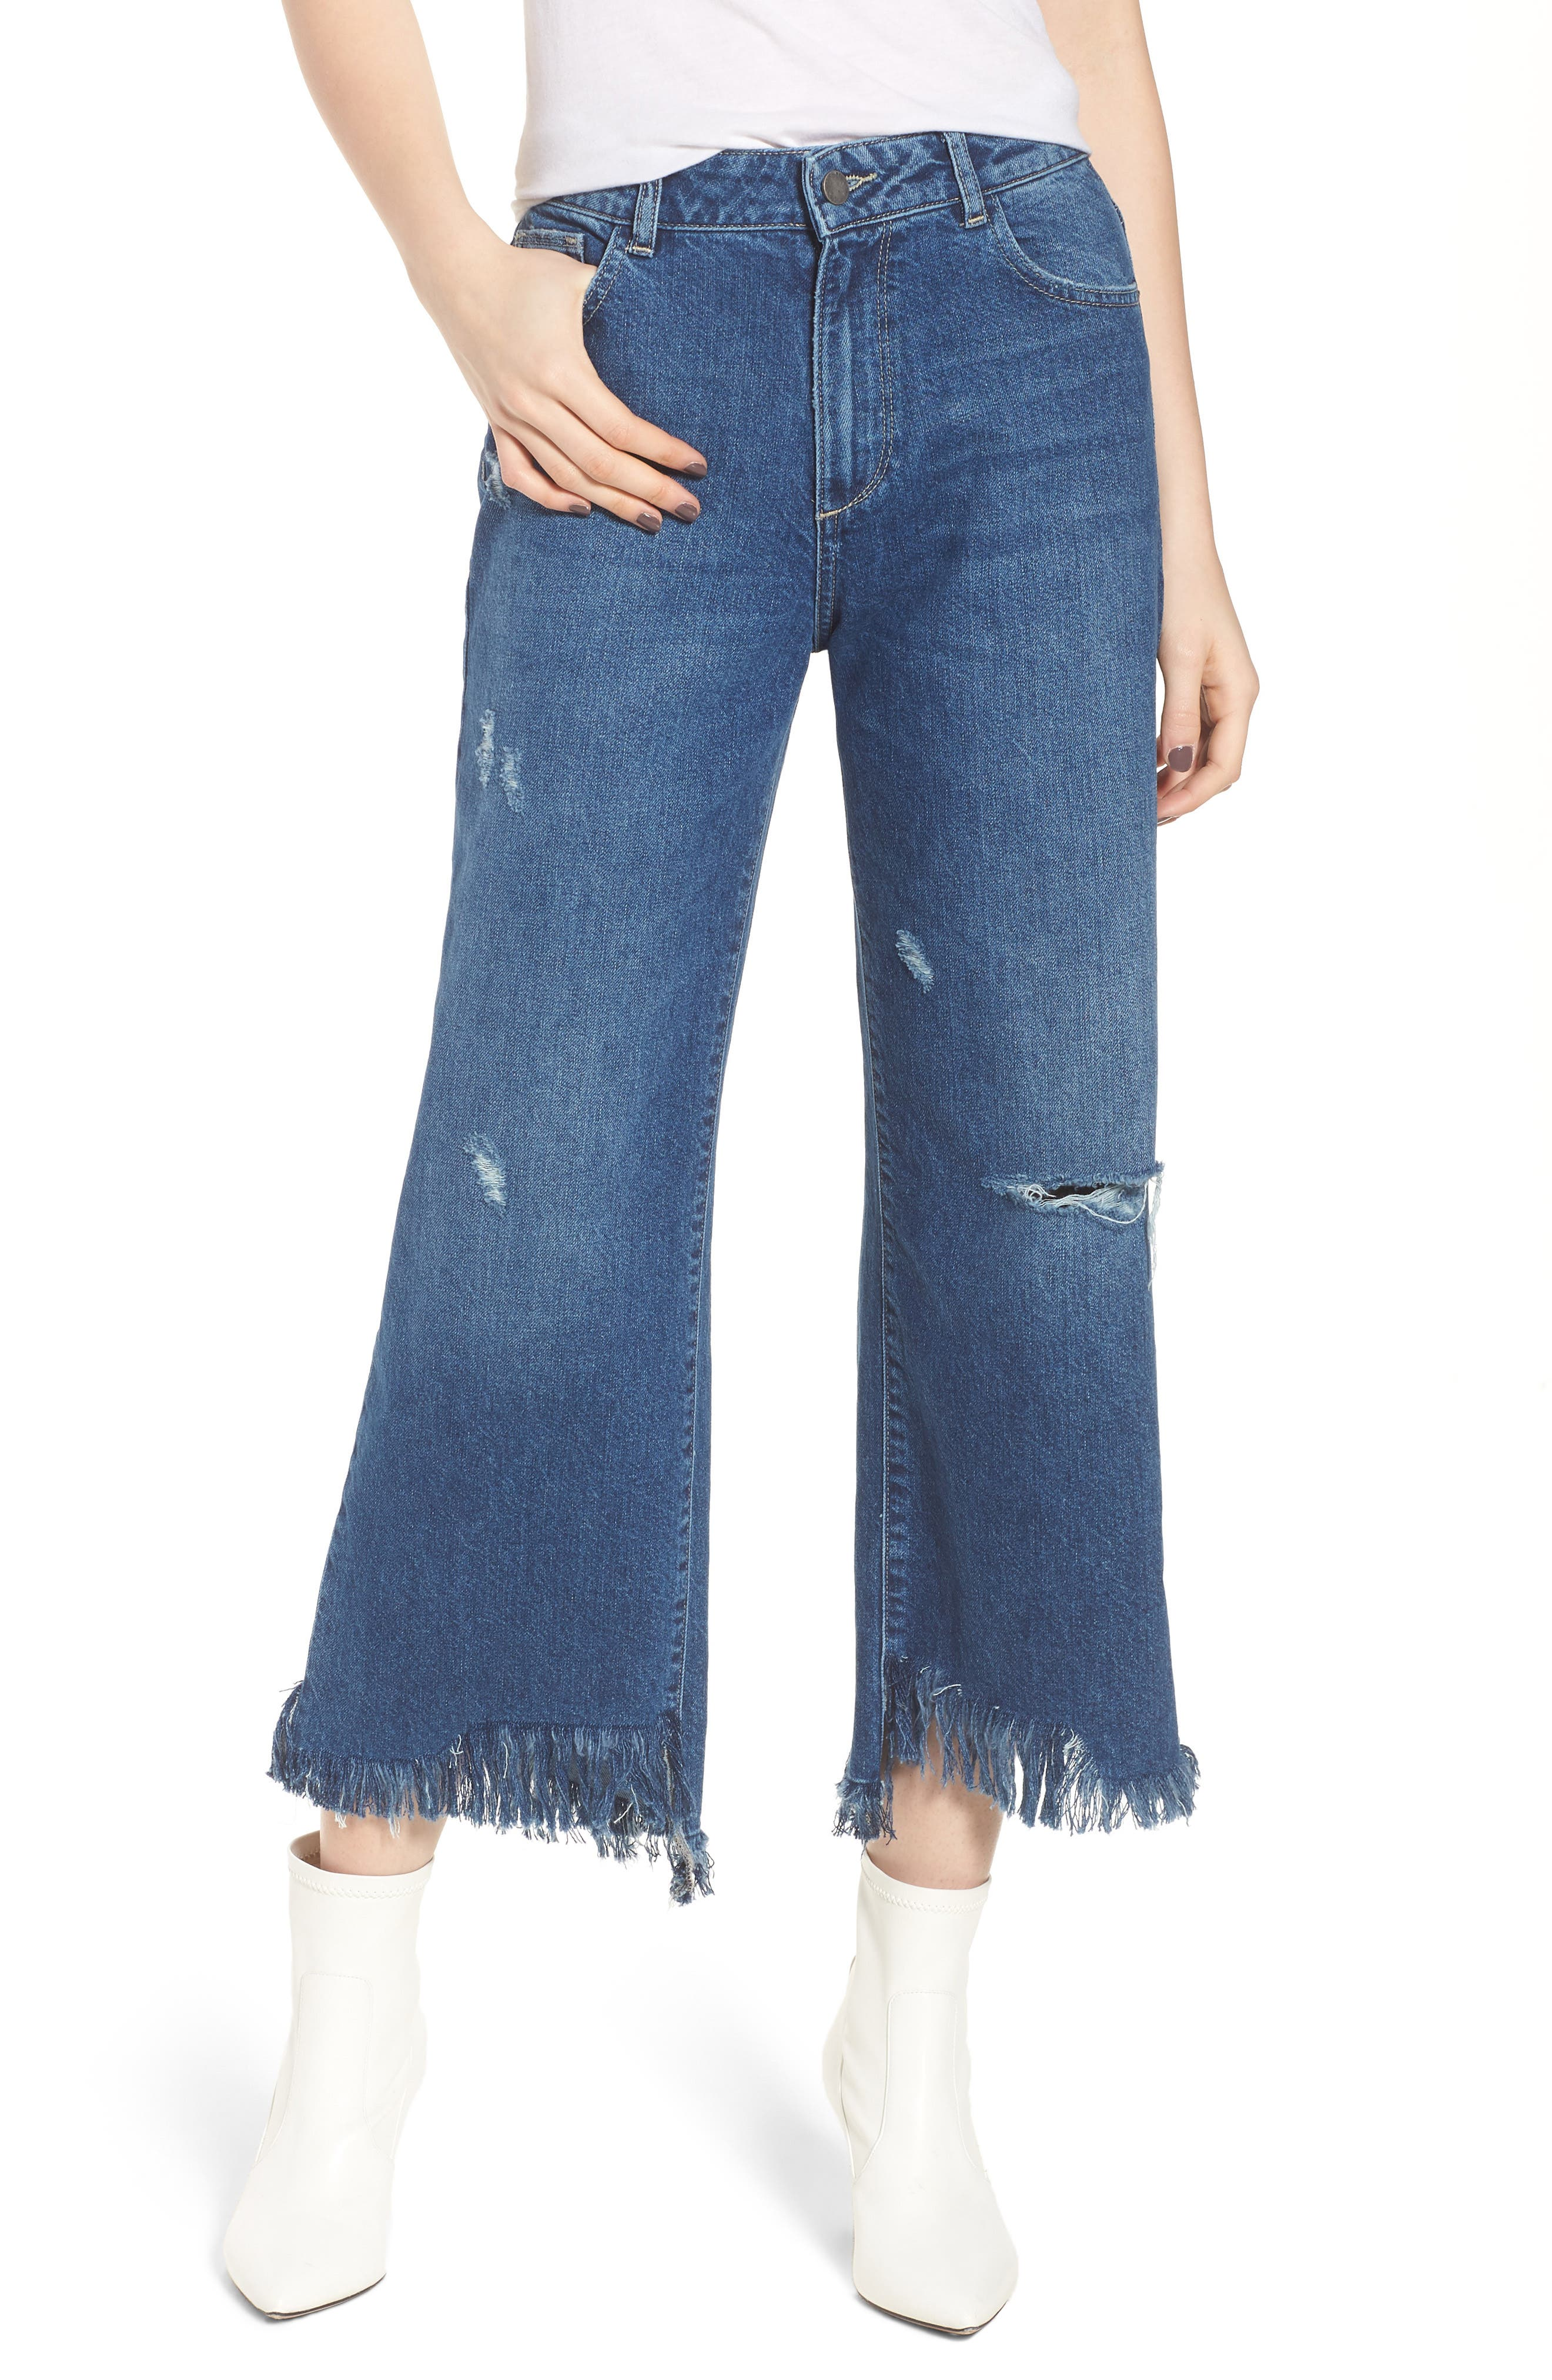 Hepburn High Waist Wide Leg Jeans,                         Main,                         color, Goldfield